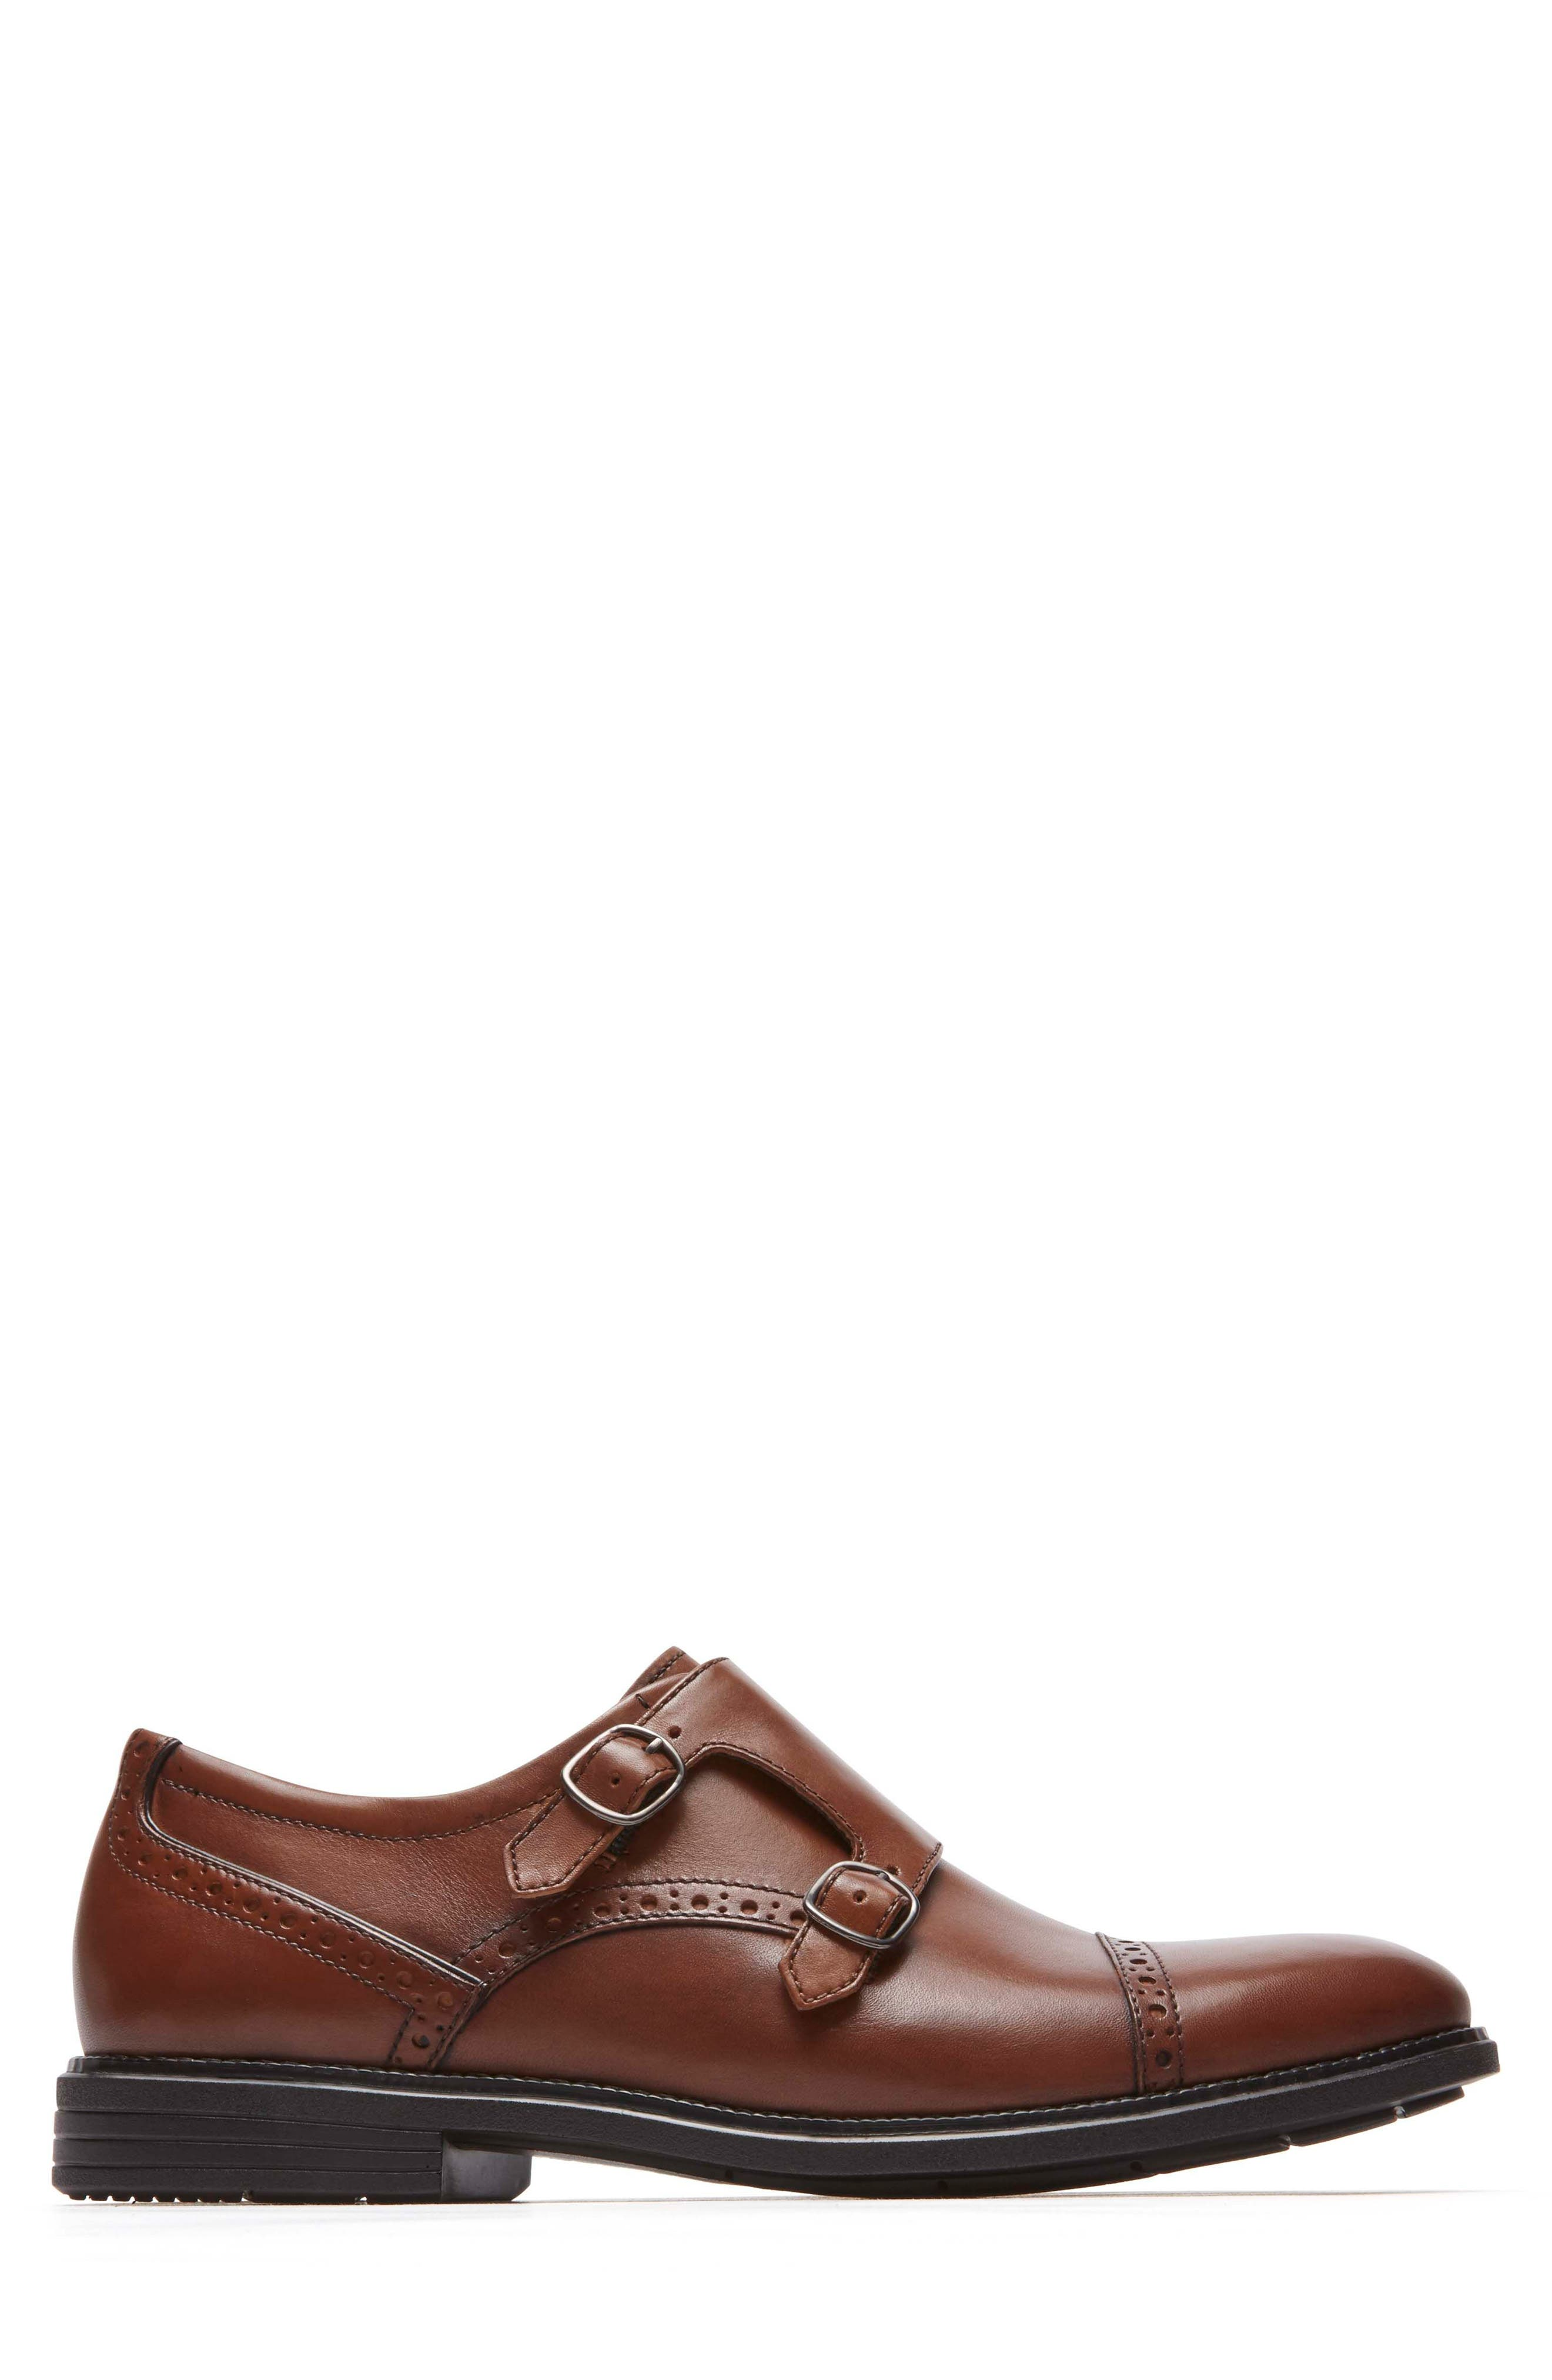 Madson Double Monk Strap Shoe,                             Alternate thumbnail 3, color,                             Tan Leather